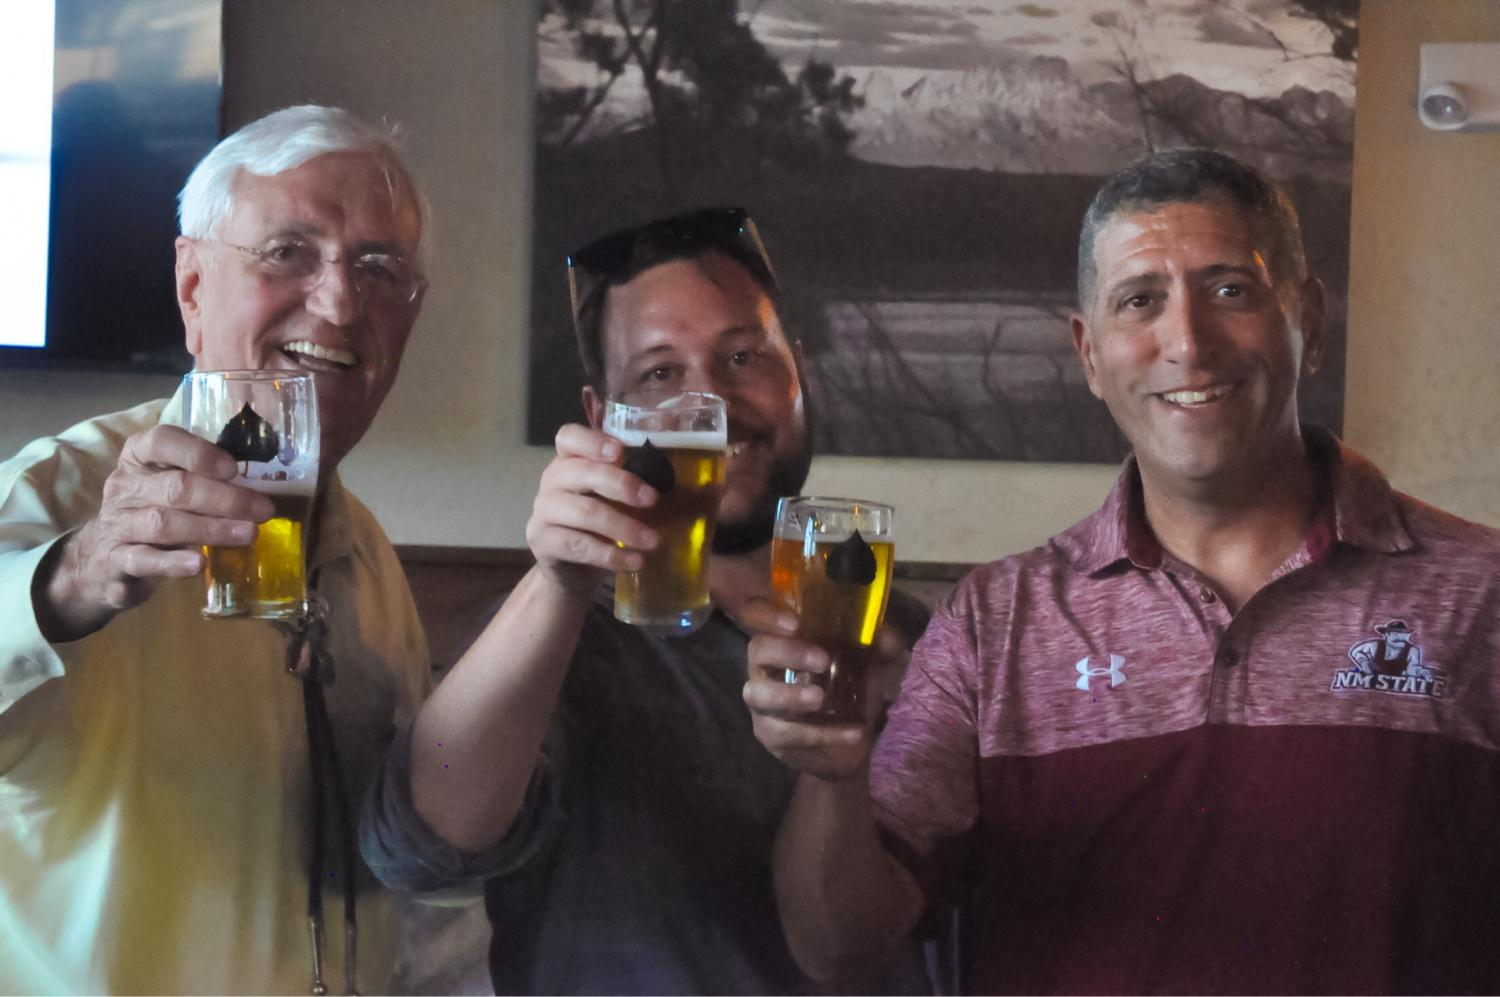 NMSU President Garrey Carruthers (Left), Bosque Managing Director Gabe Jensen, and Athletic Director Mario Moccia pose on Thursday as the University announced a partnership that includes their own, branded, beer.